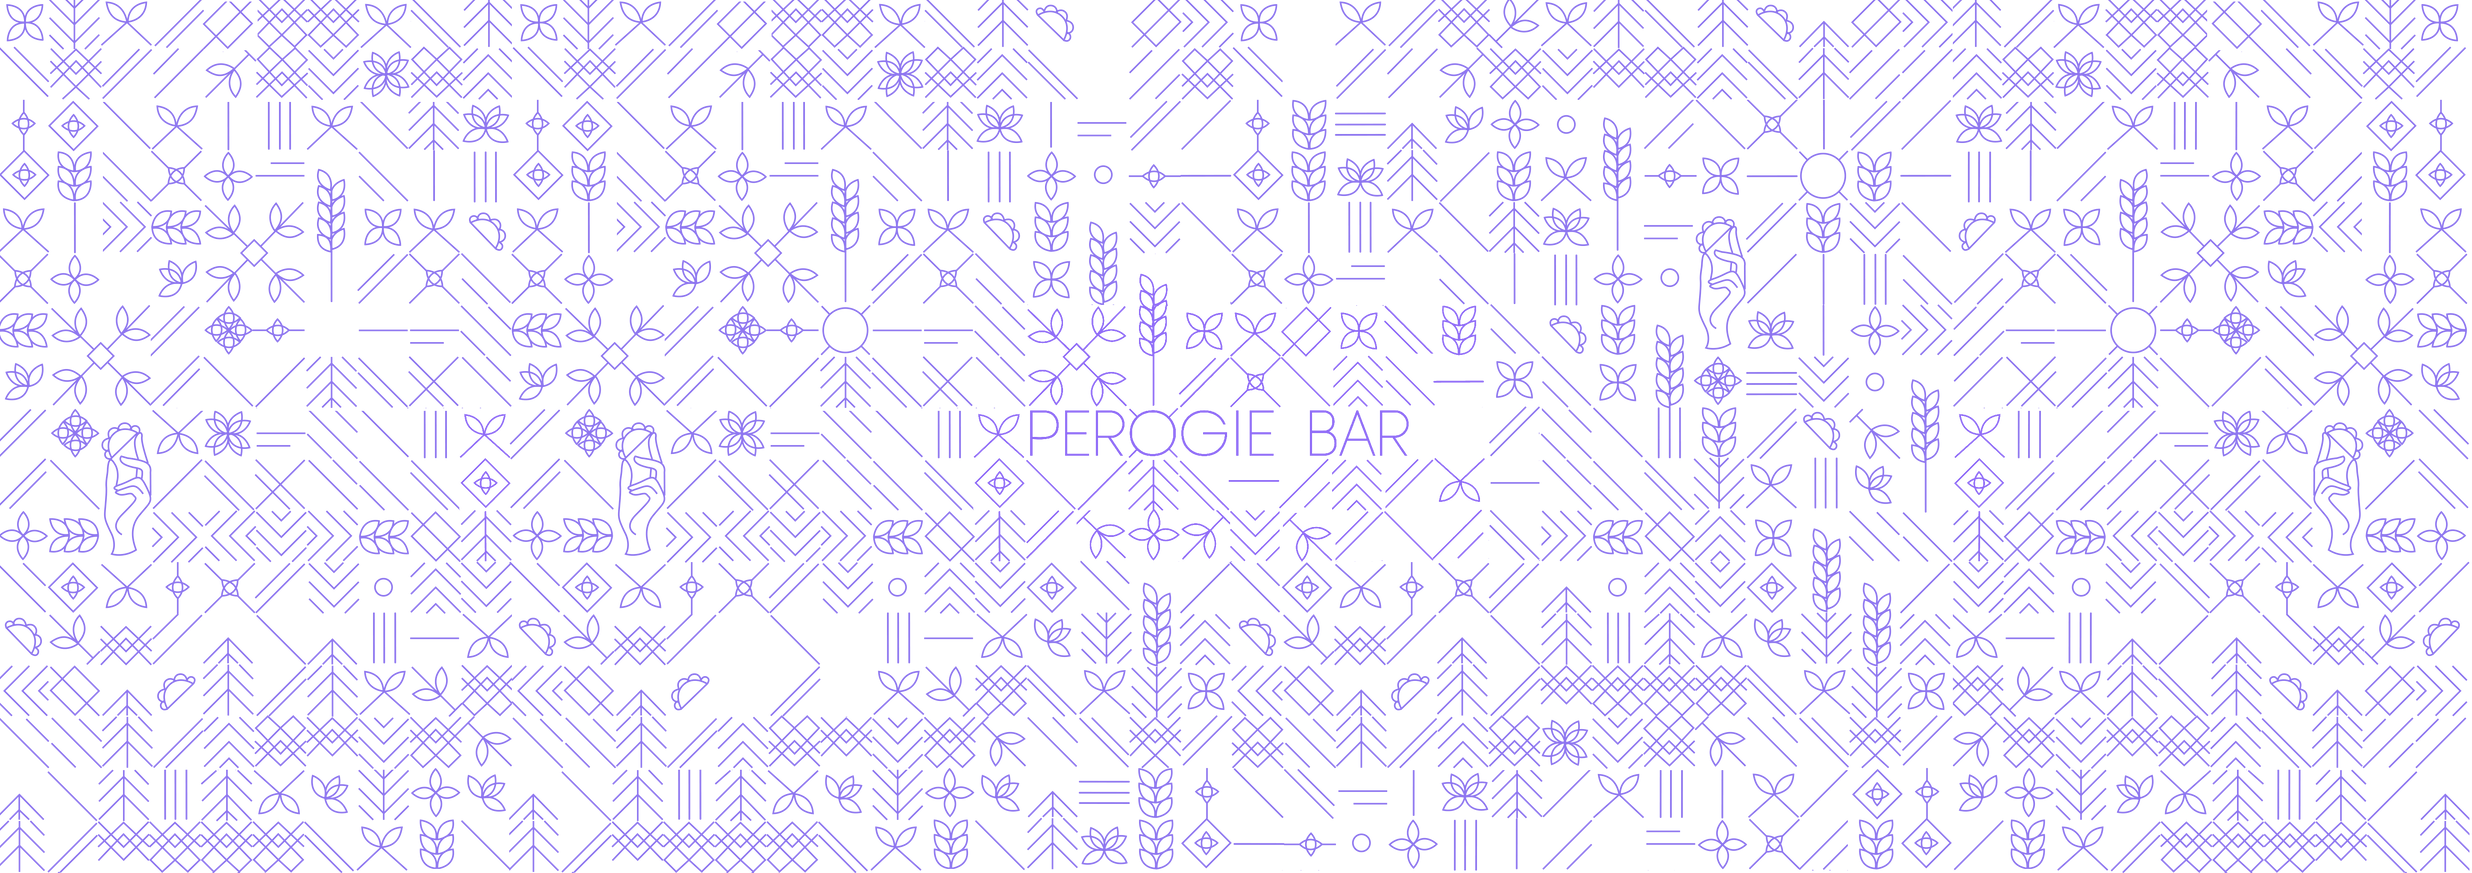 Perogie bar tile png.png